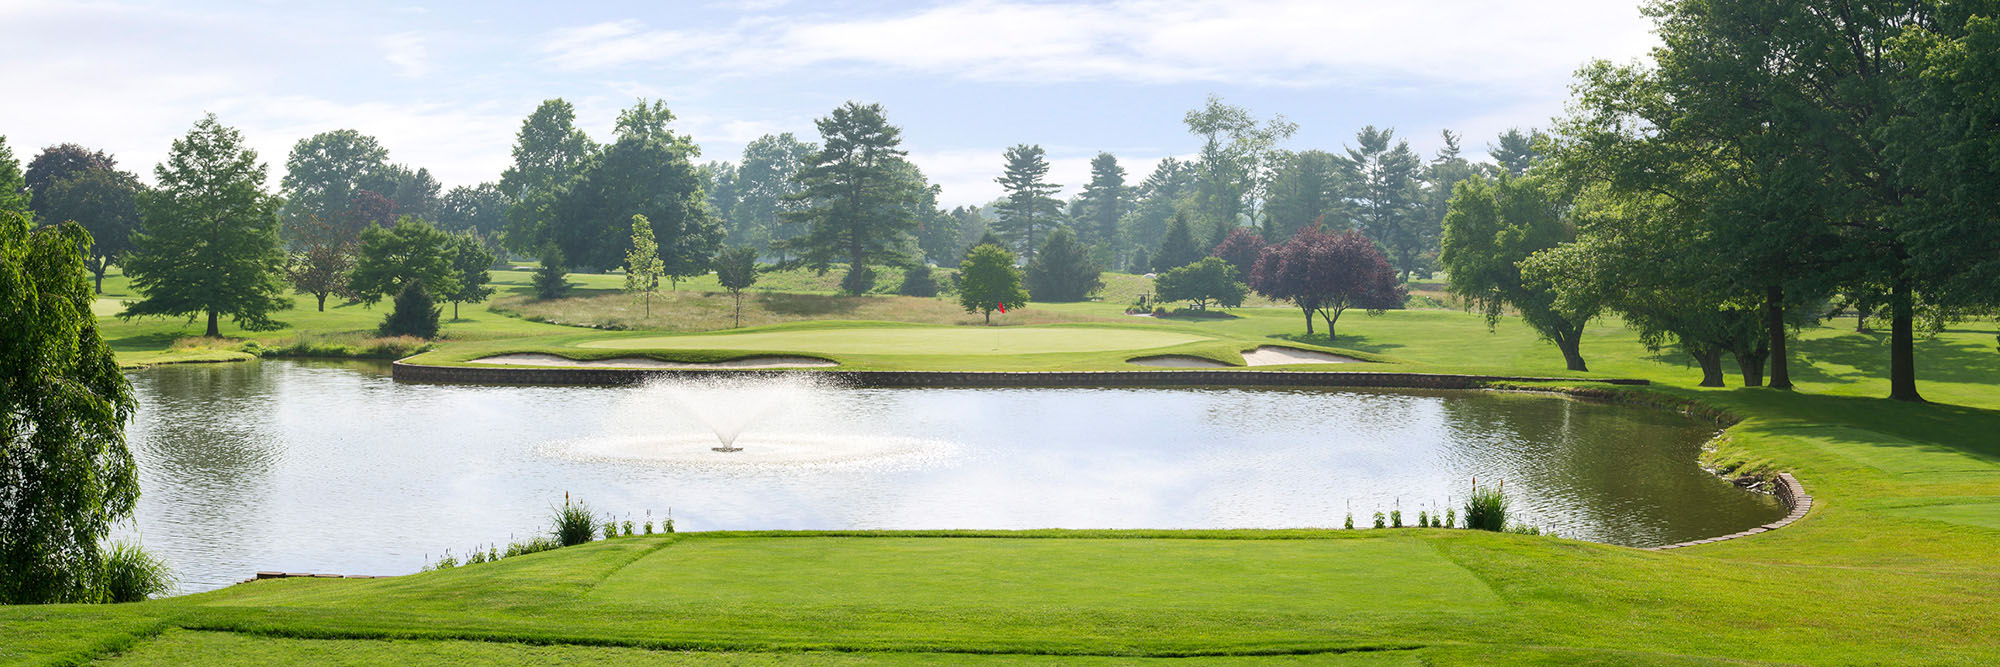 Golf Course Image - Out Door Country Club No. 17